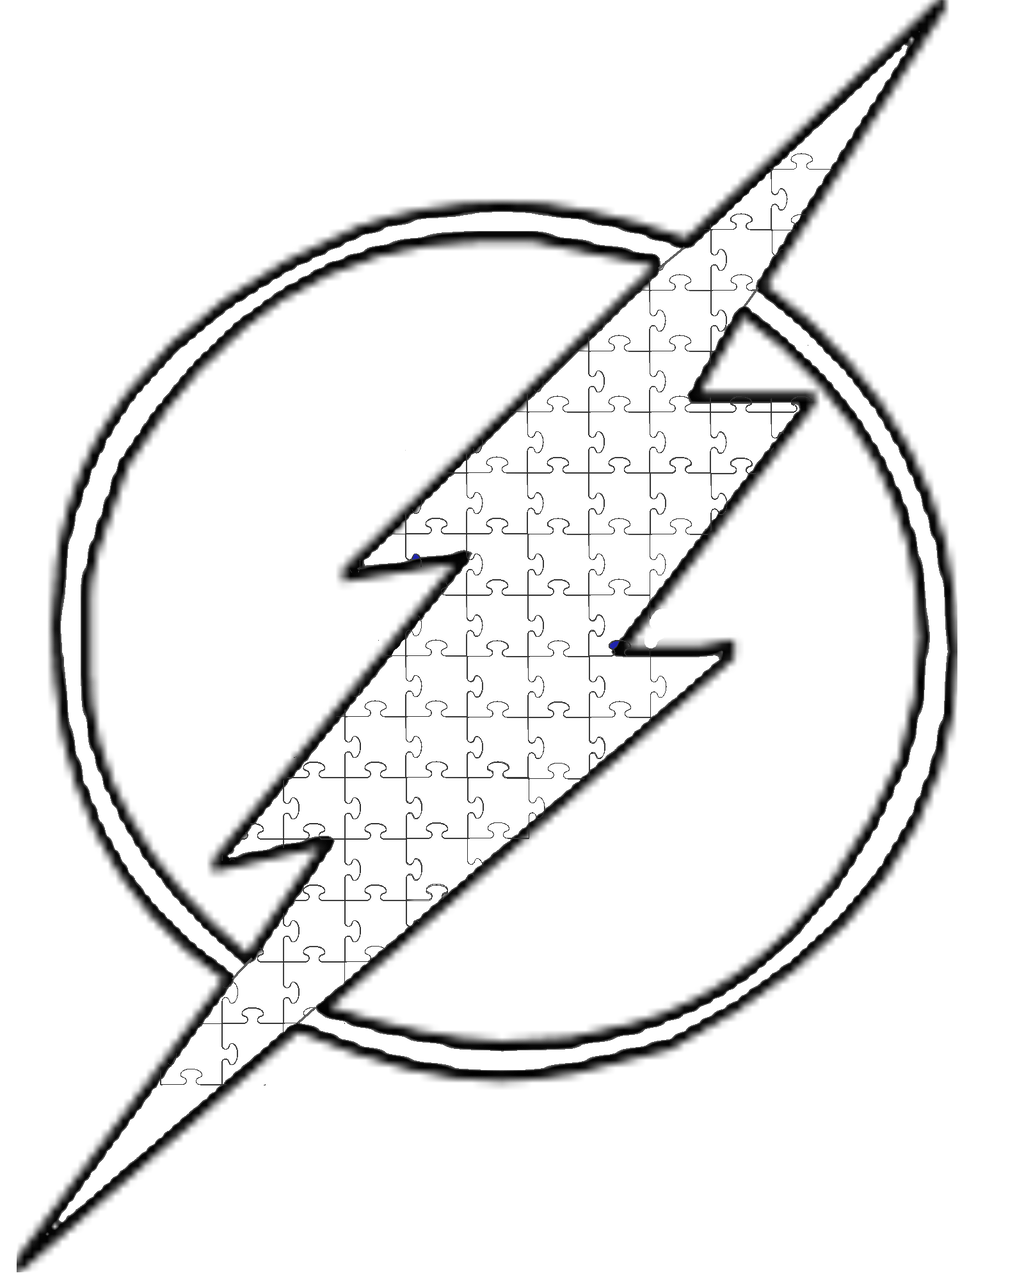 The Flash Line Art : Lineart abstract surreal miscellaneous on color me club